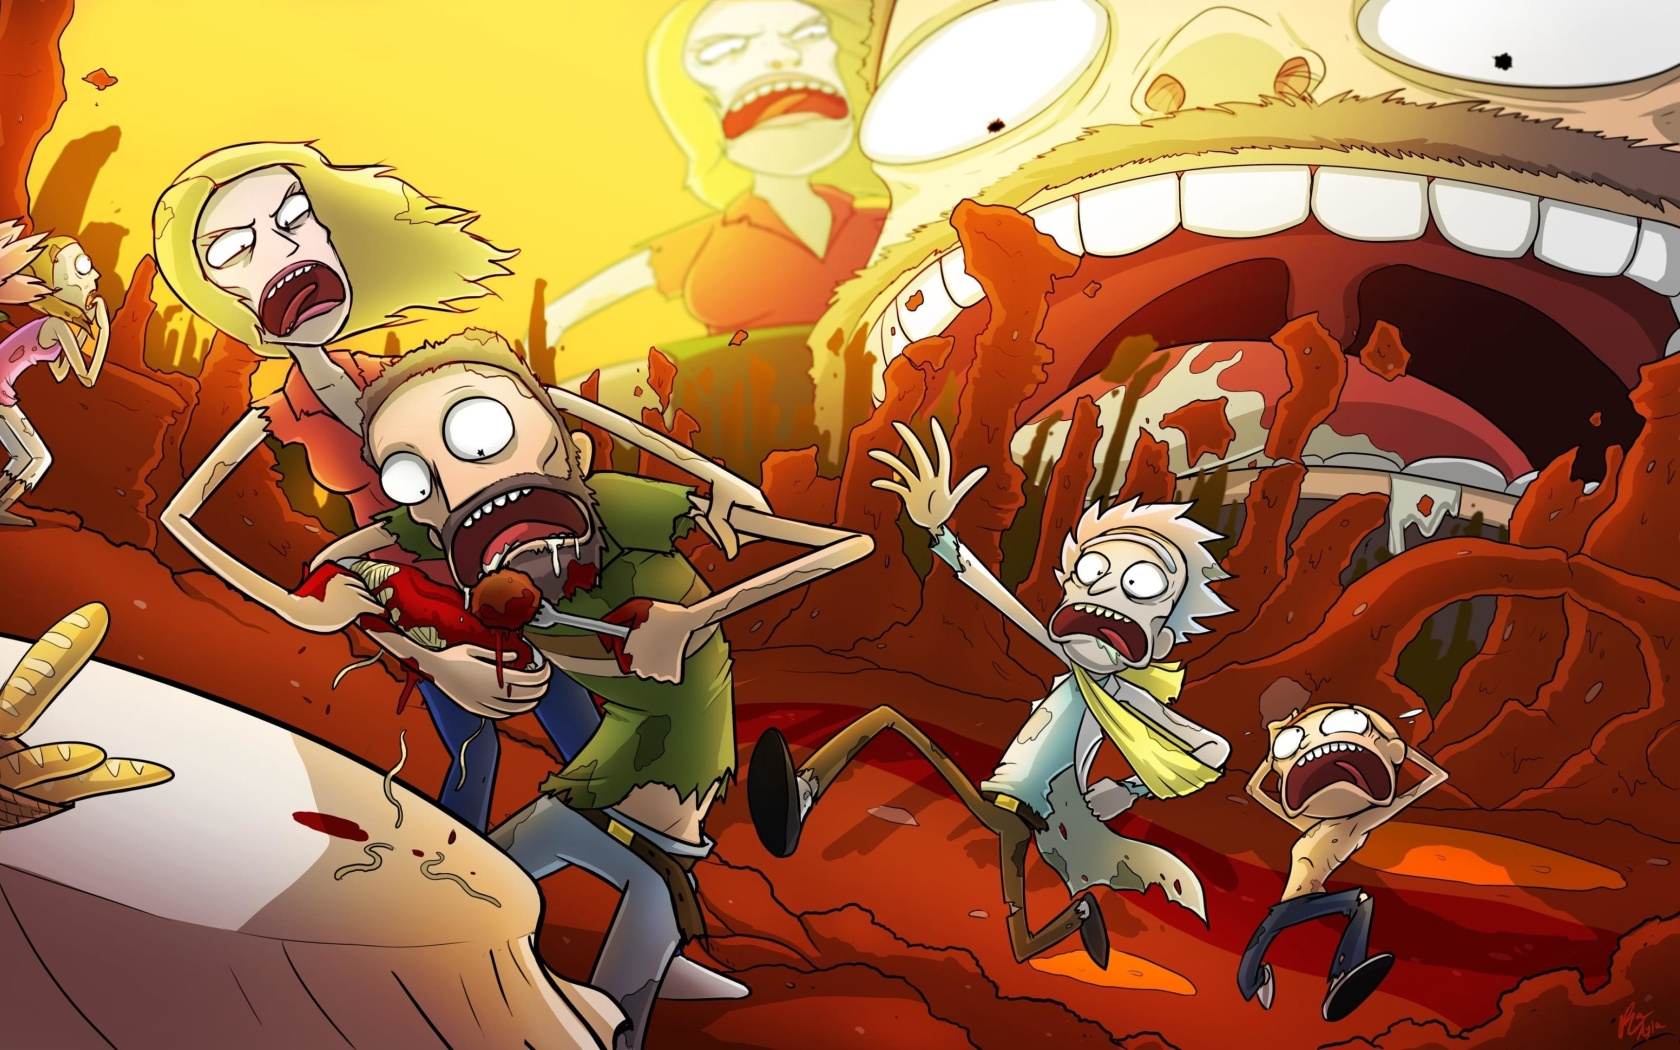 1680x1050 New Rick And Morty 2020 1680x1050 Resolution ...